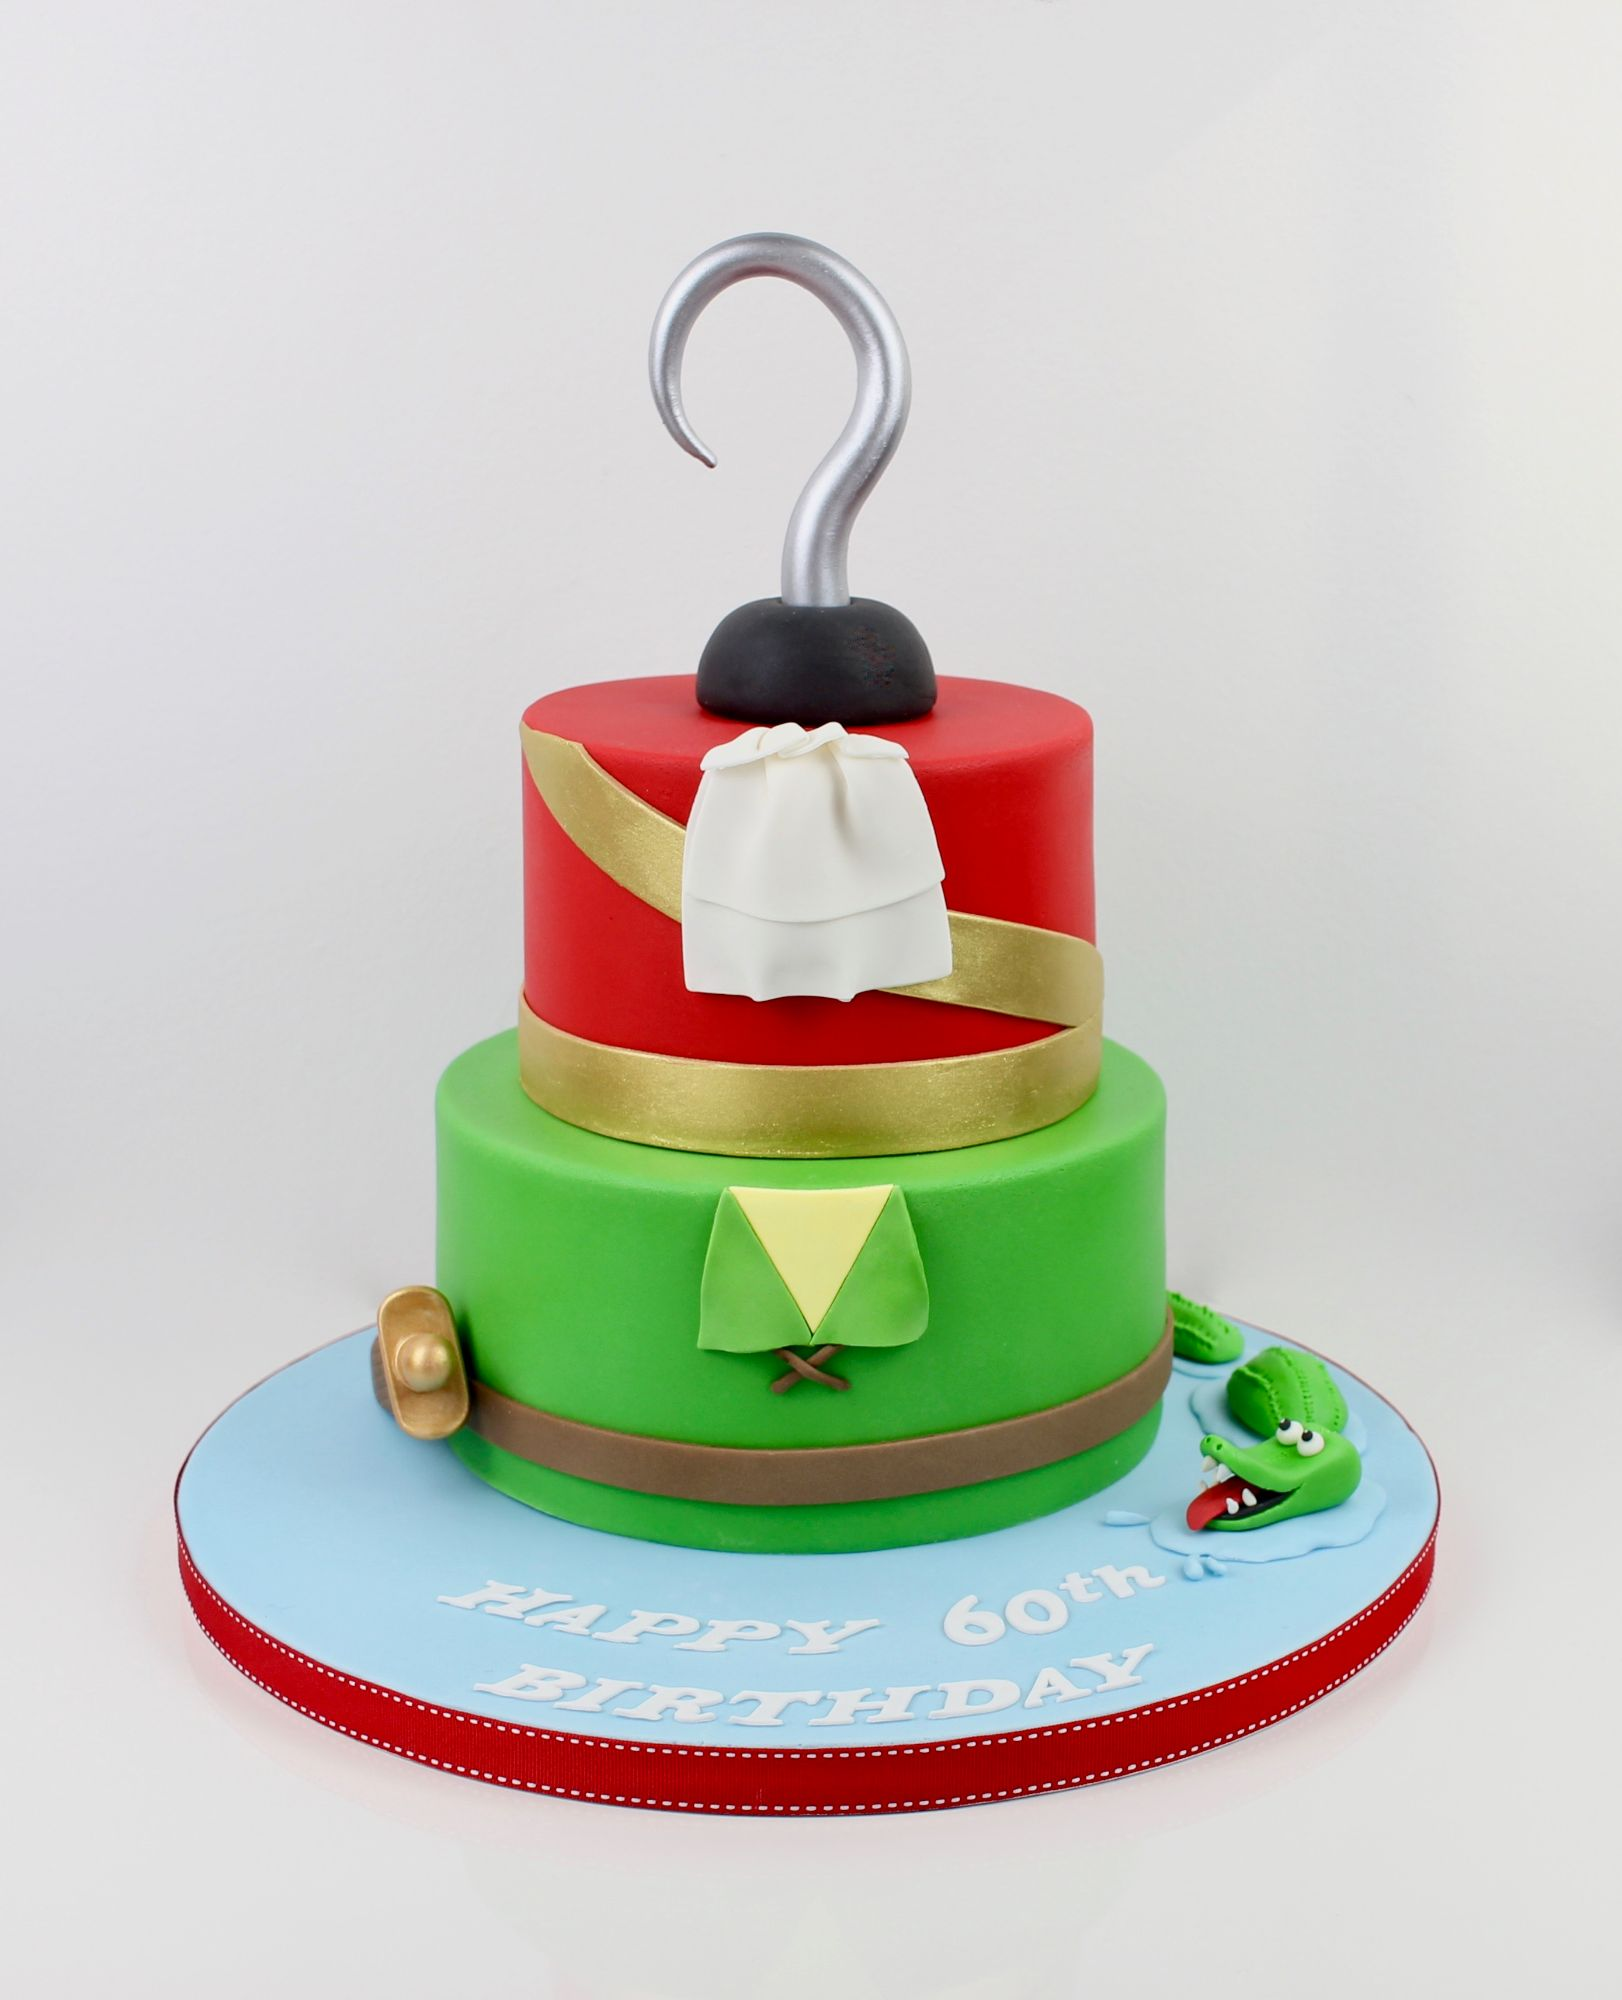 Peterpan & Captain hook cake